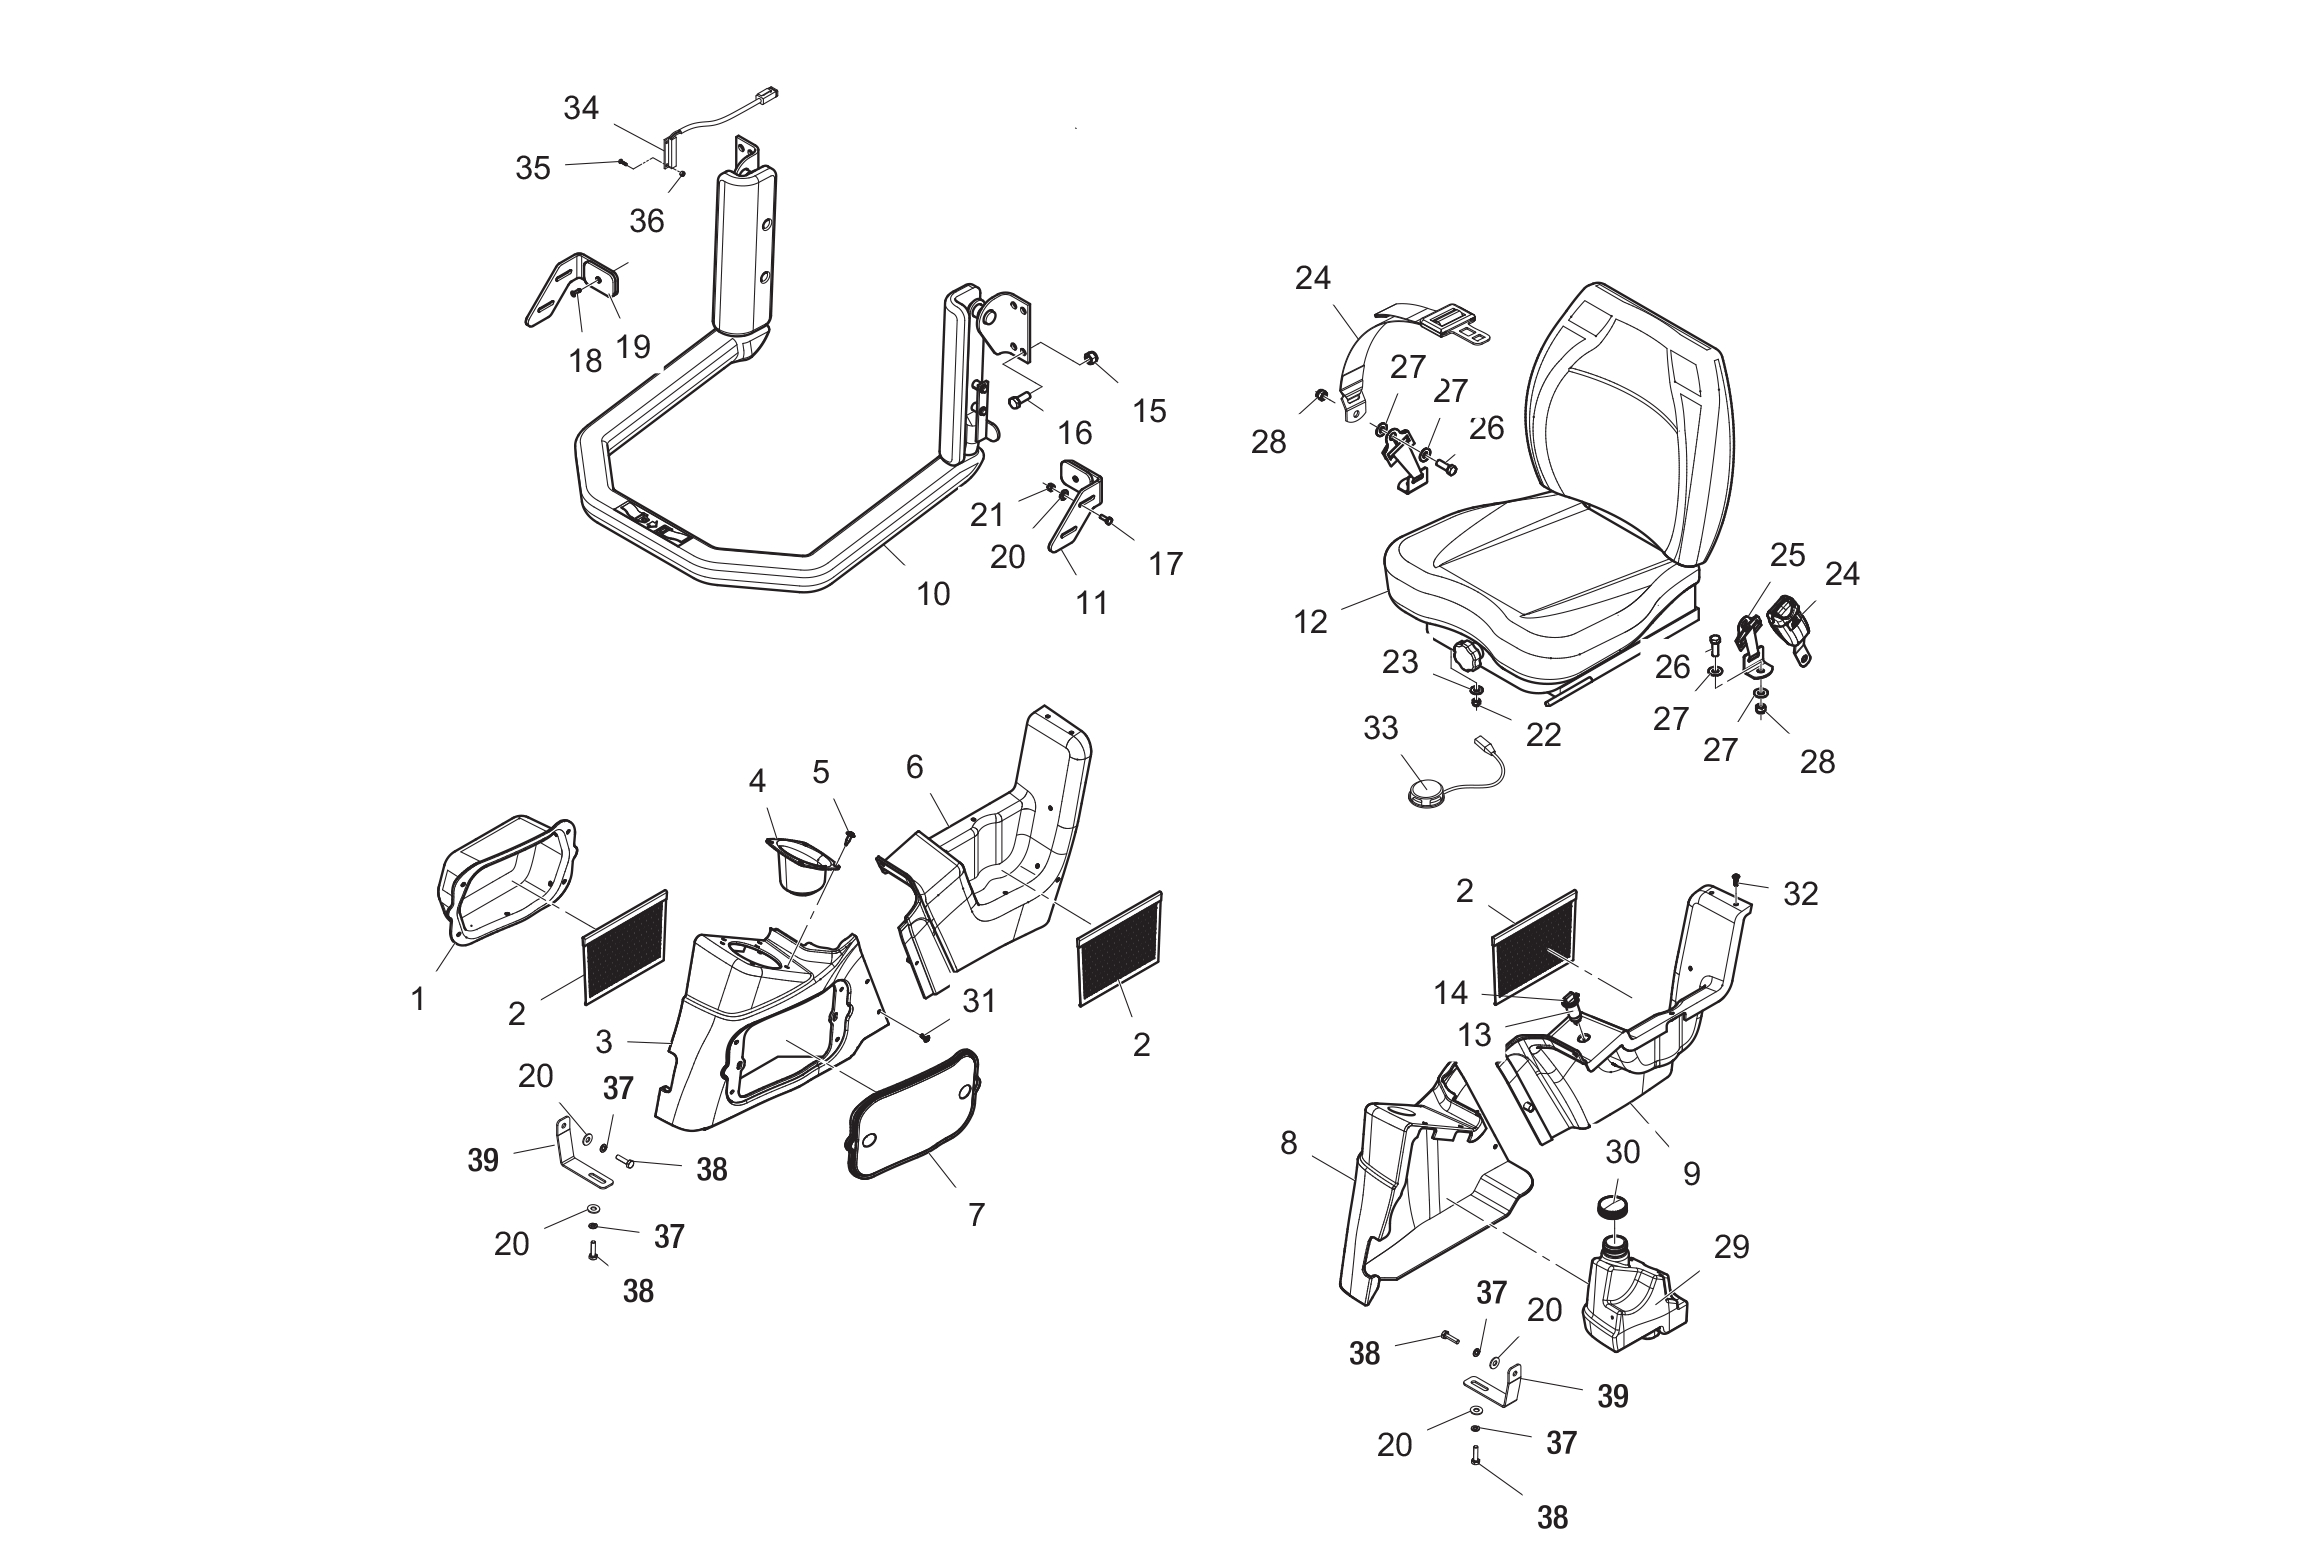 Diagram 05-A Cab Interior - ROPS